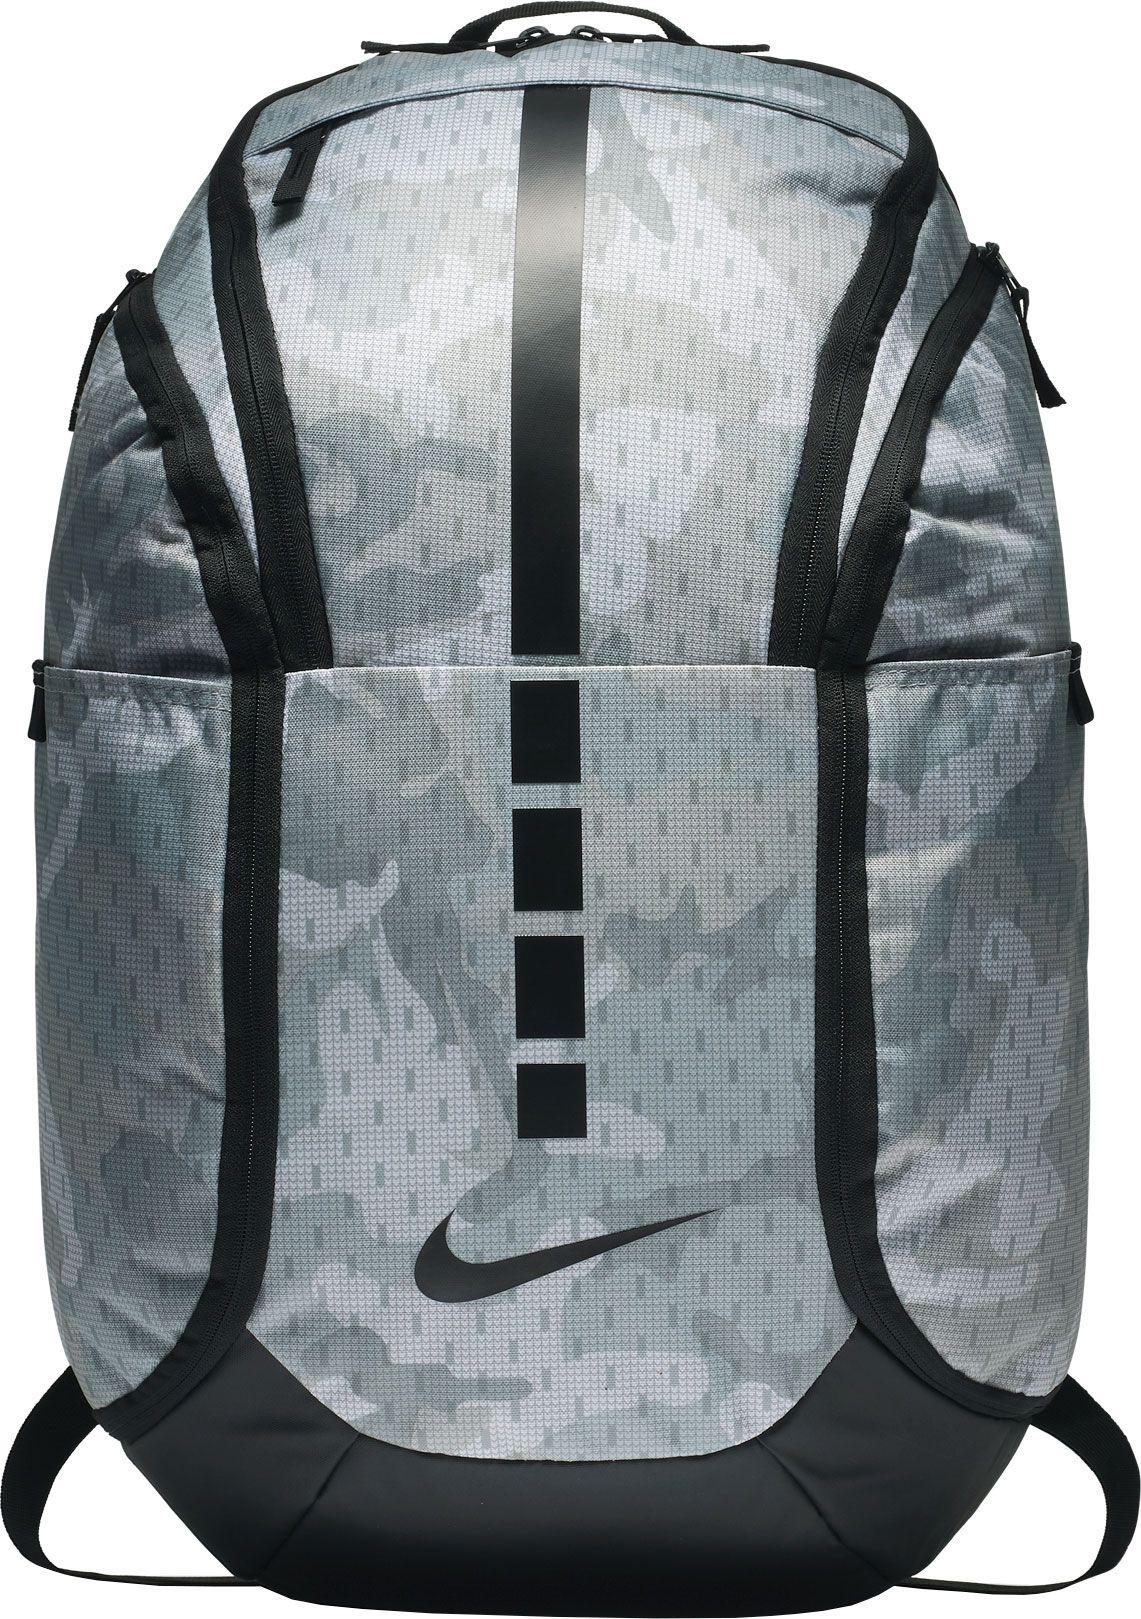 Lyst - Nike Hoops Elite Pro Camo Basketball Backpack in Gray for Men ac1195c840af2